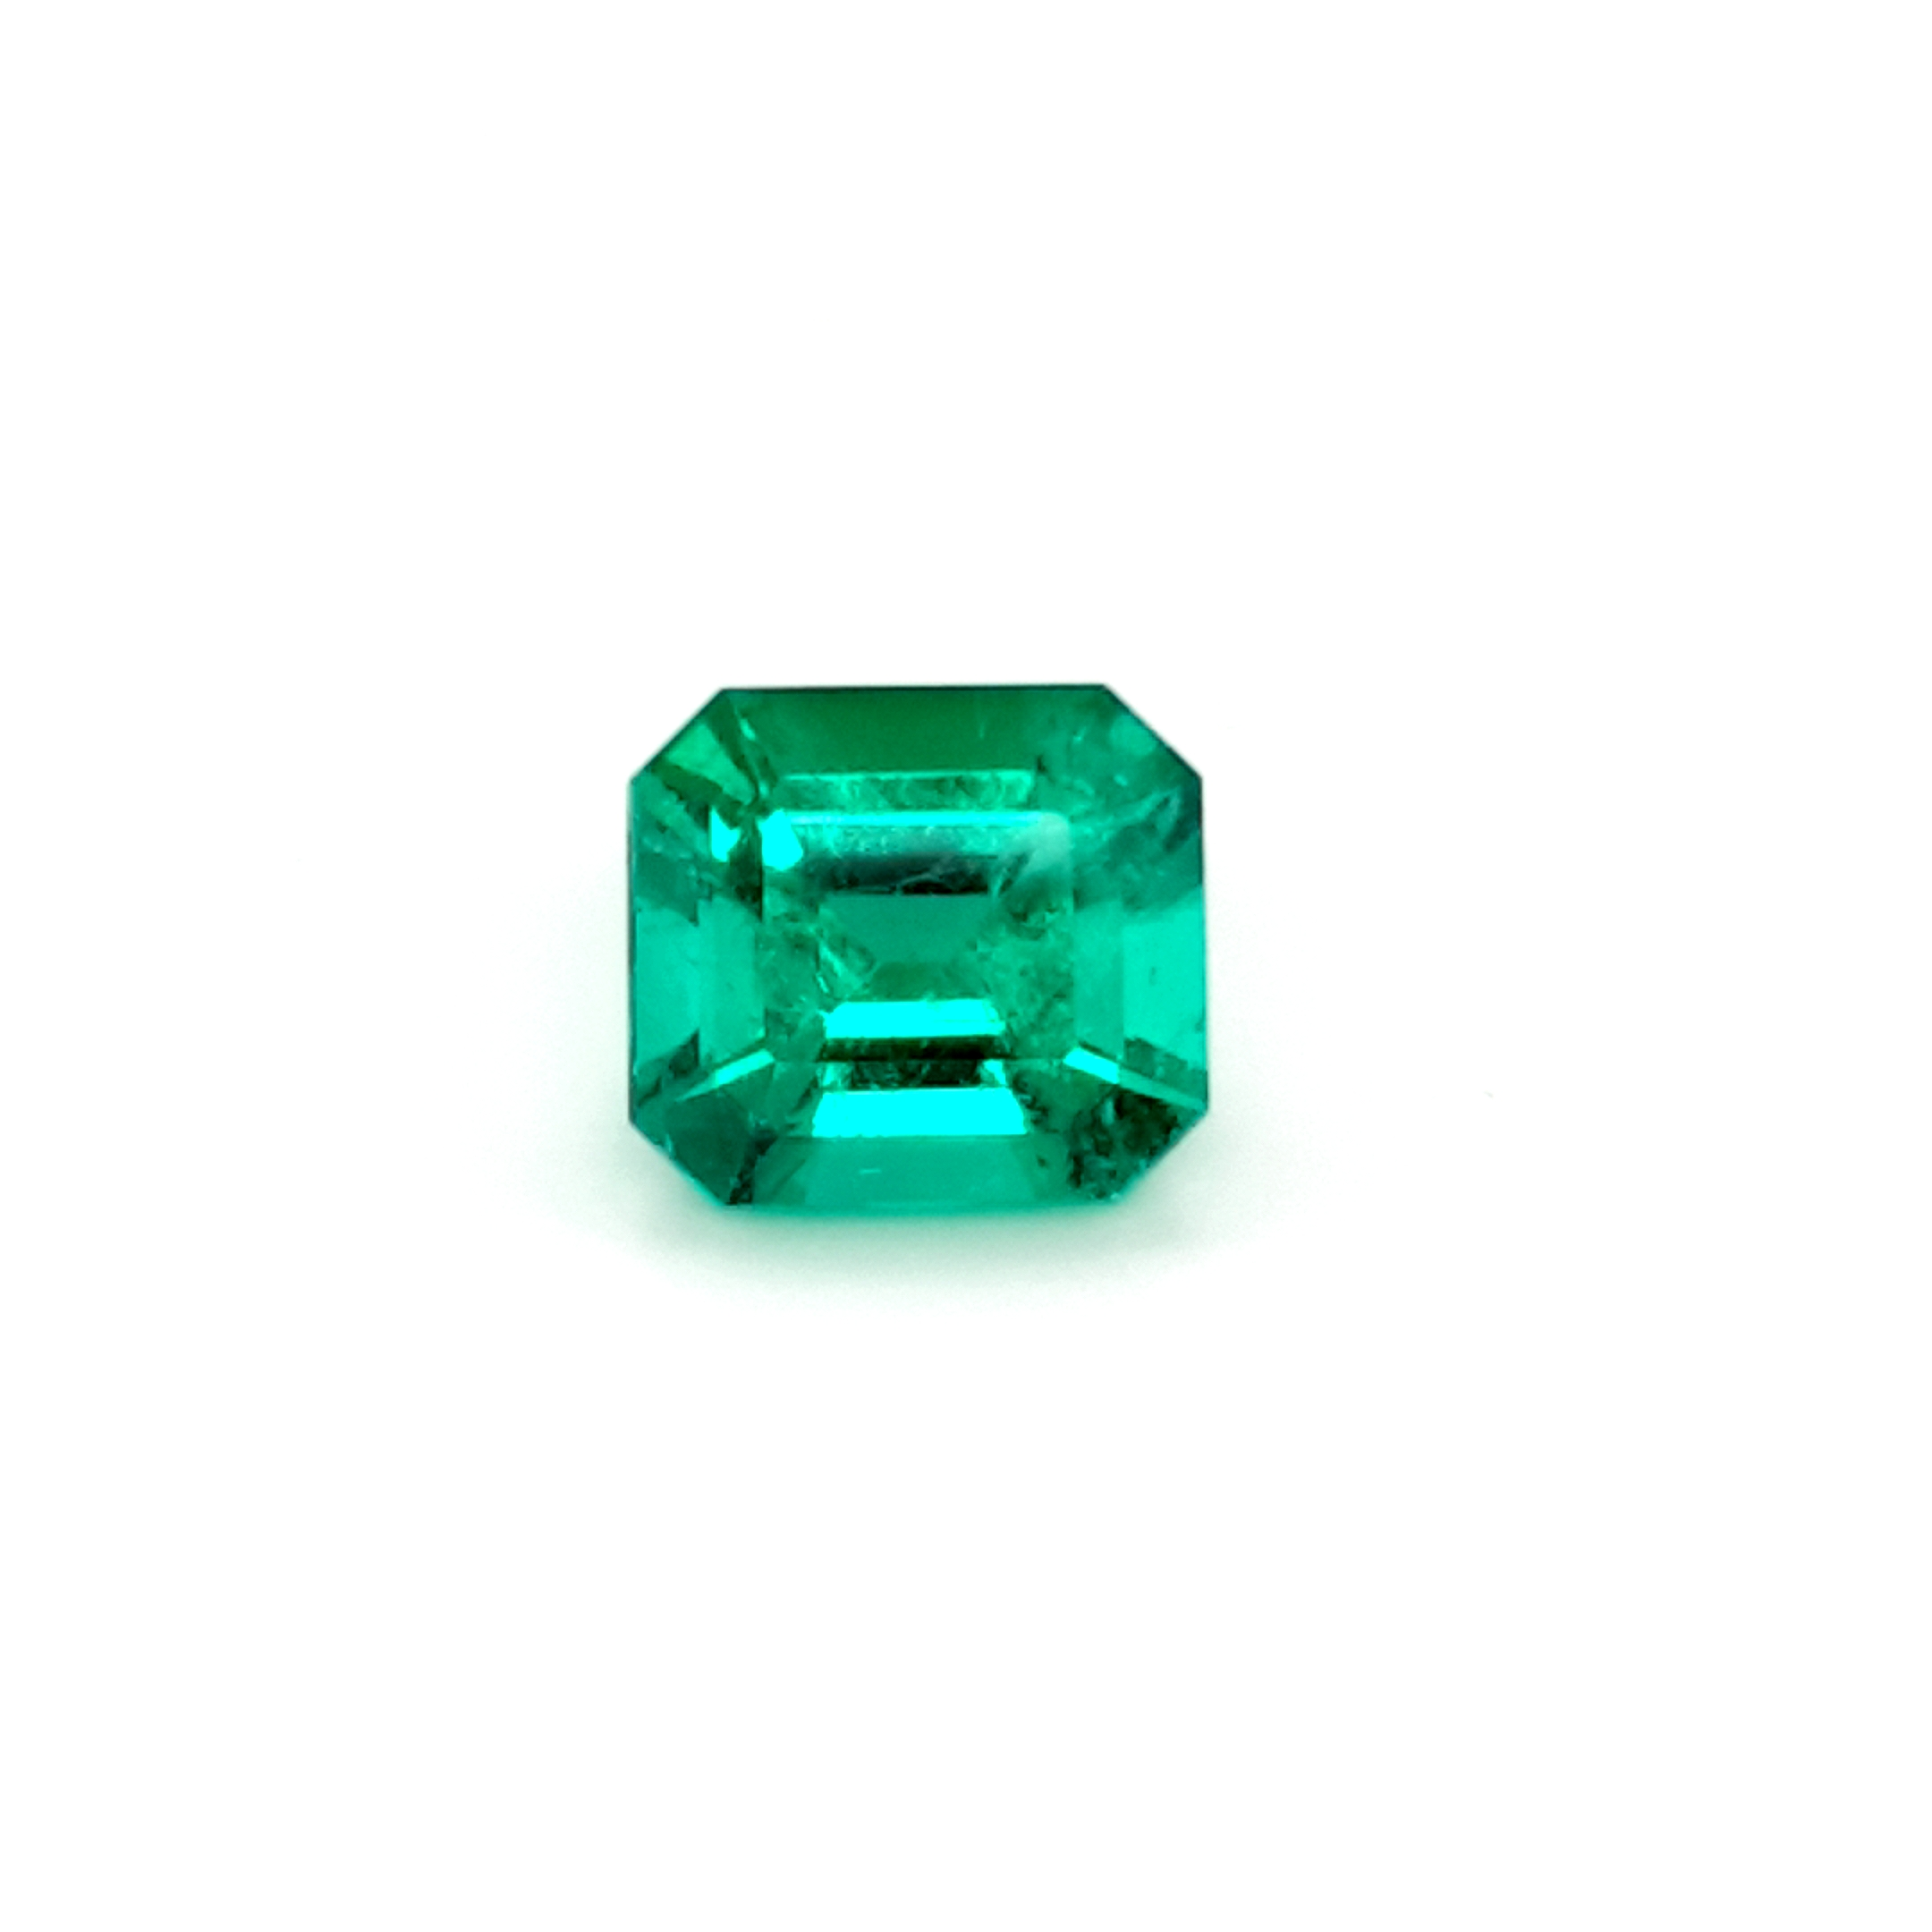 2,74ct. Emerald from Colombia cert. EML20D4 ClaudiaHamann__2021-03-26-11-44-44